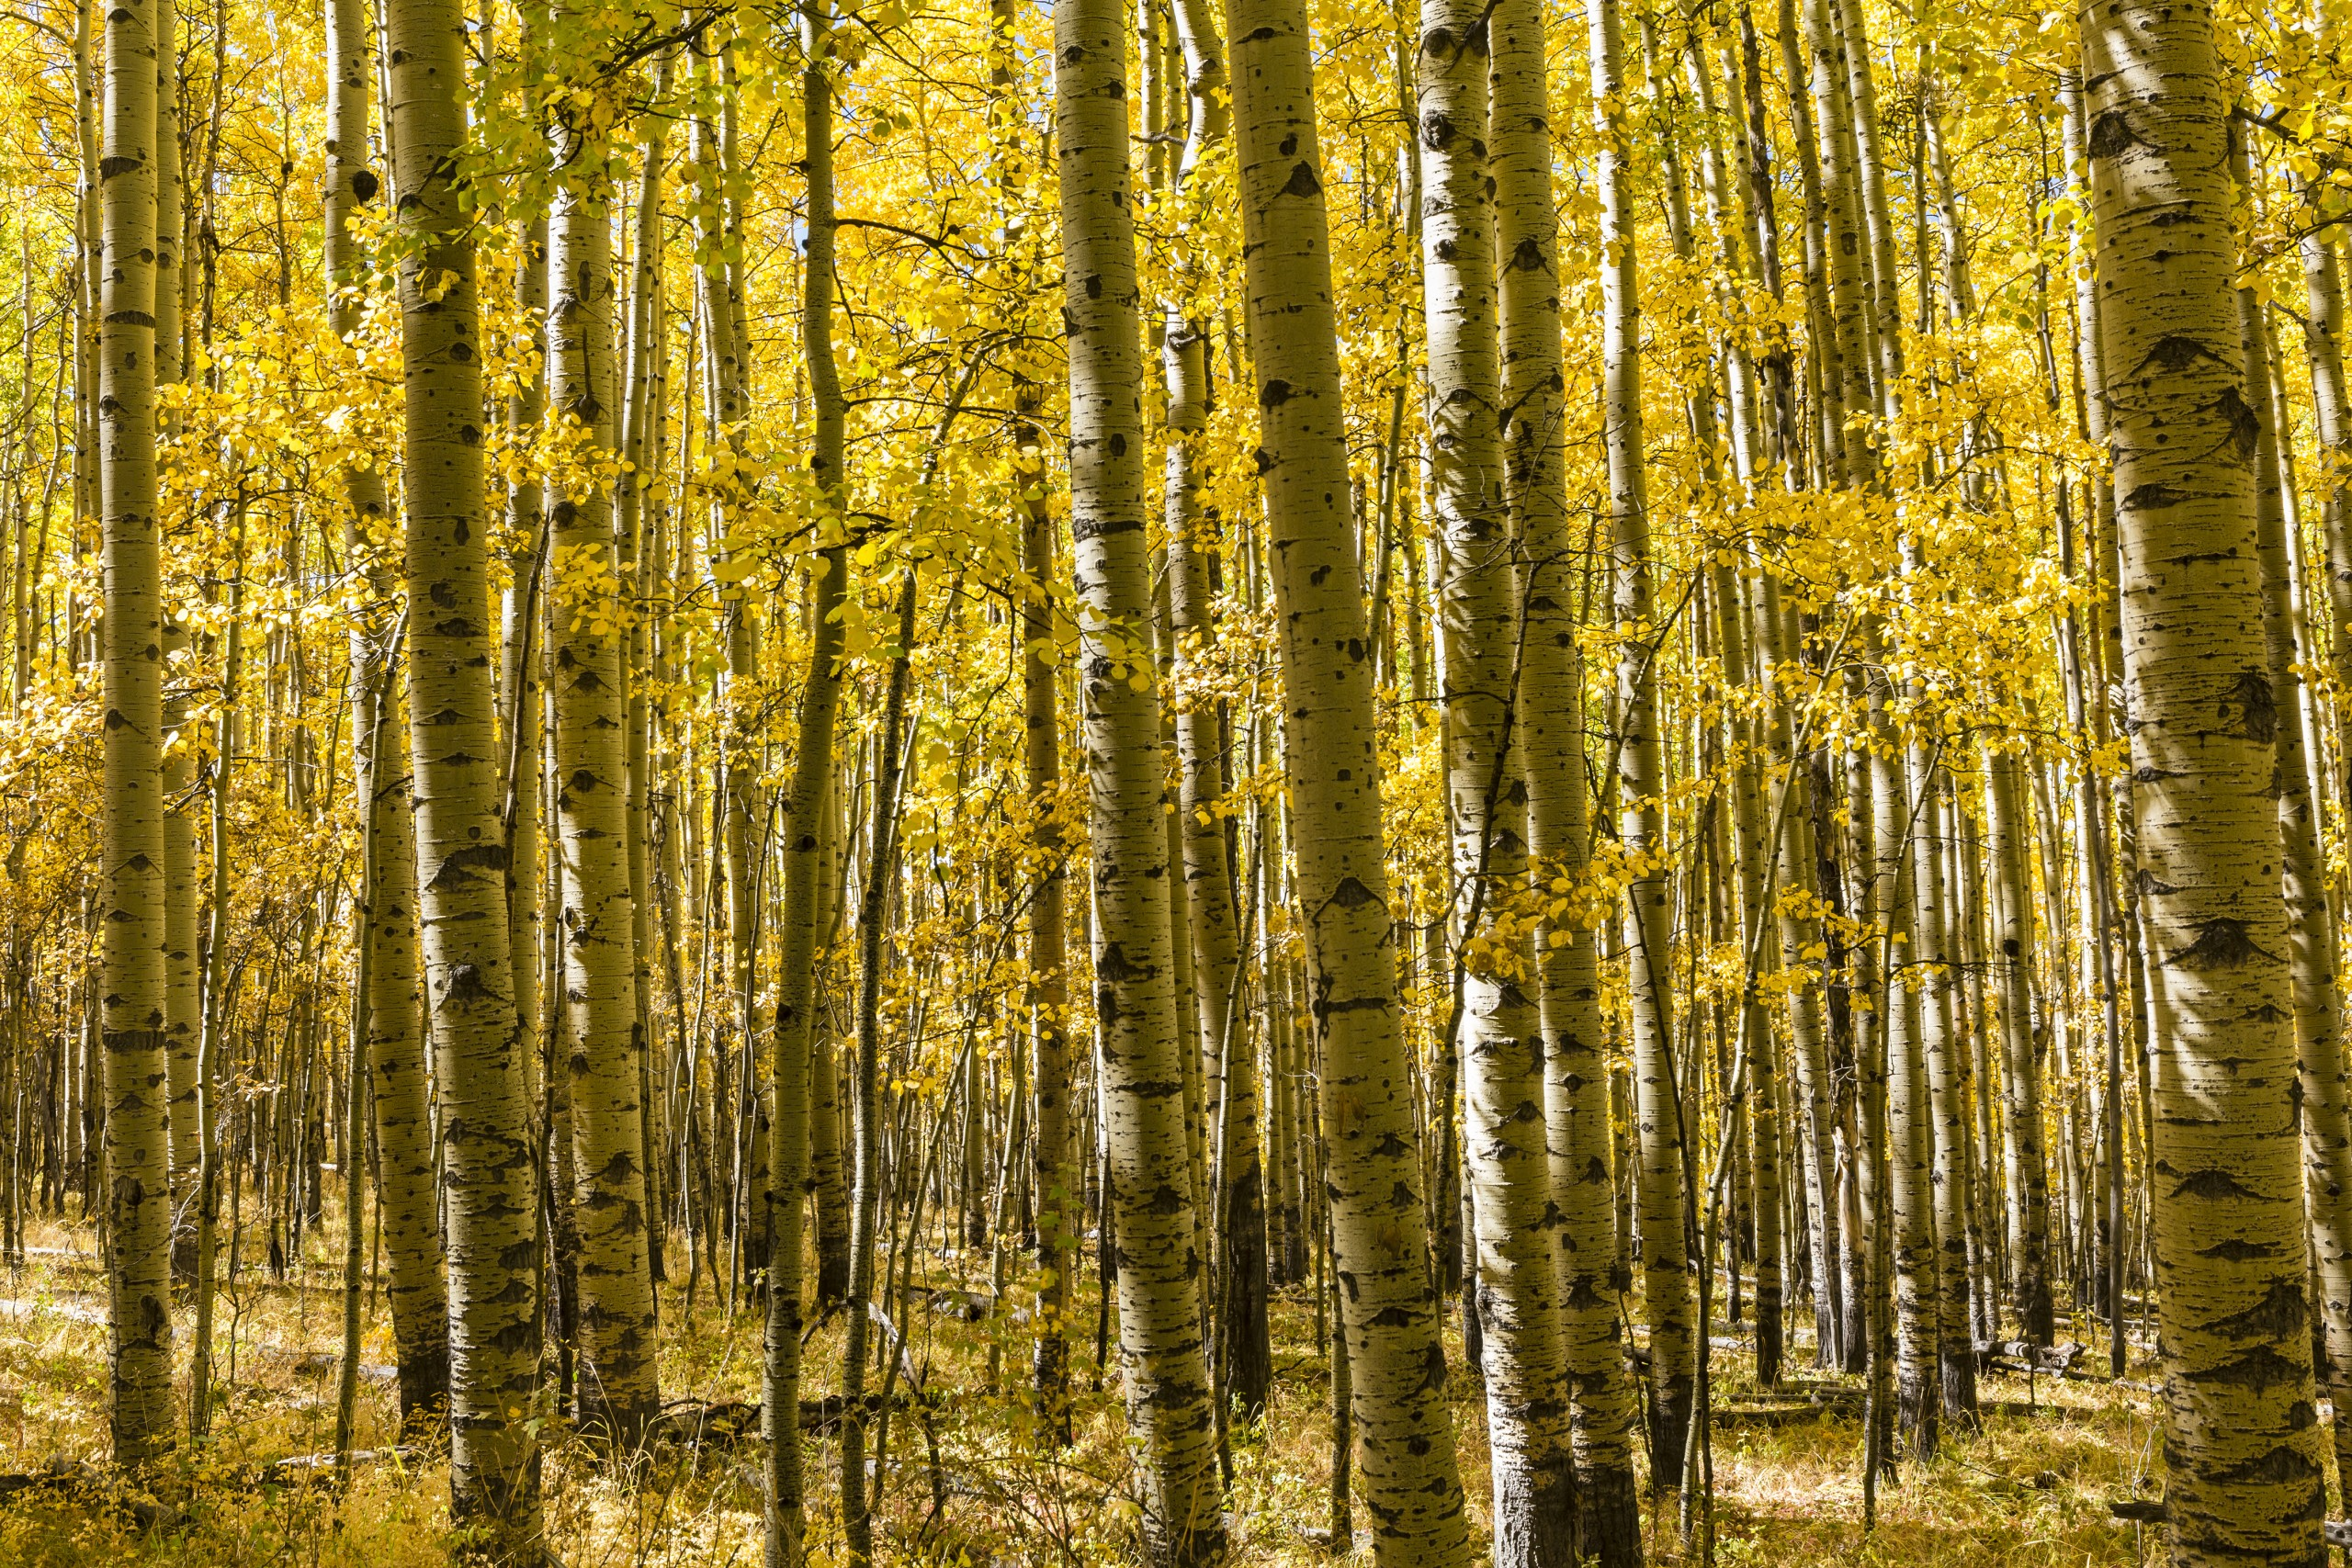 A,grove,of,aspen,trees,in,full,autumn,color,on